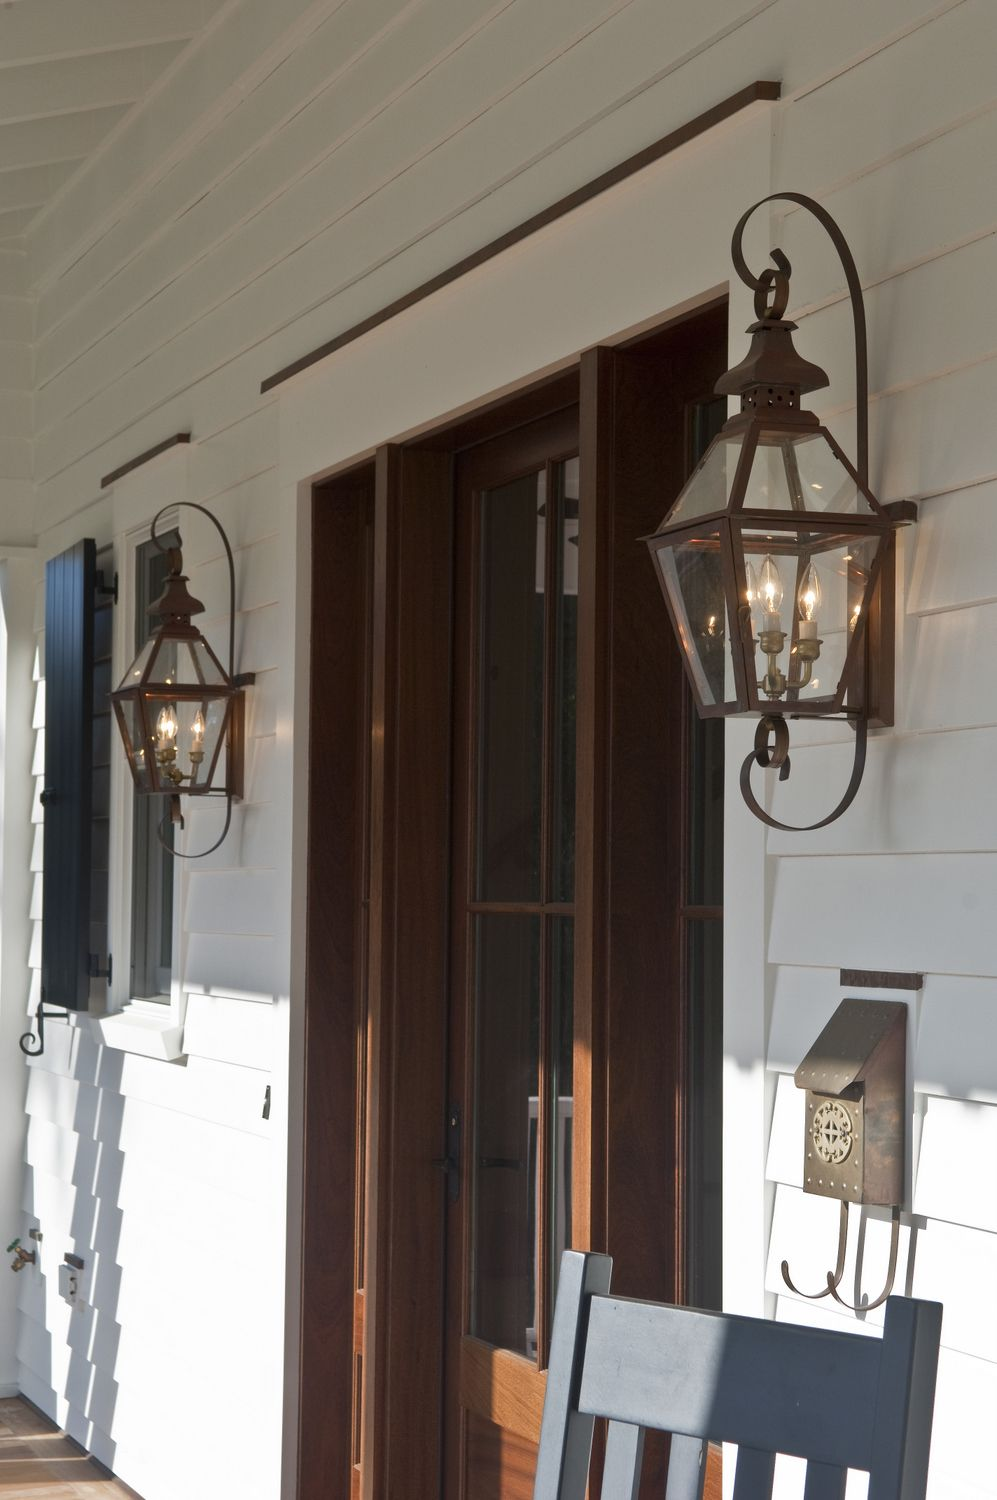 The Tradd Street II Lantern — Gas or Electric | The ... on Decorative Wall Sconces Non Electric Lights For Closets id=33741